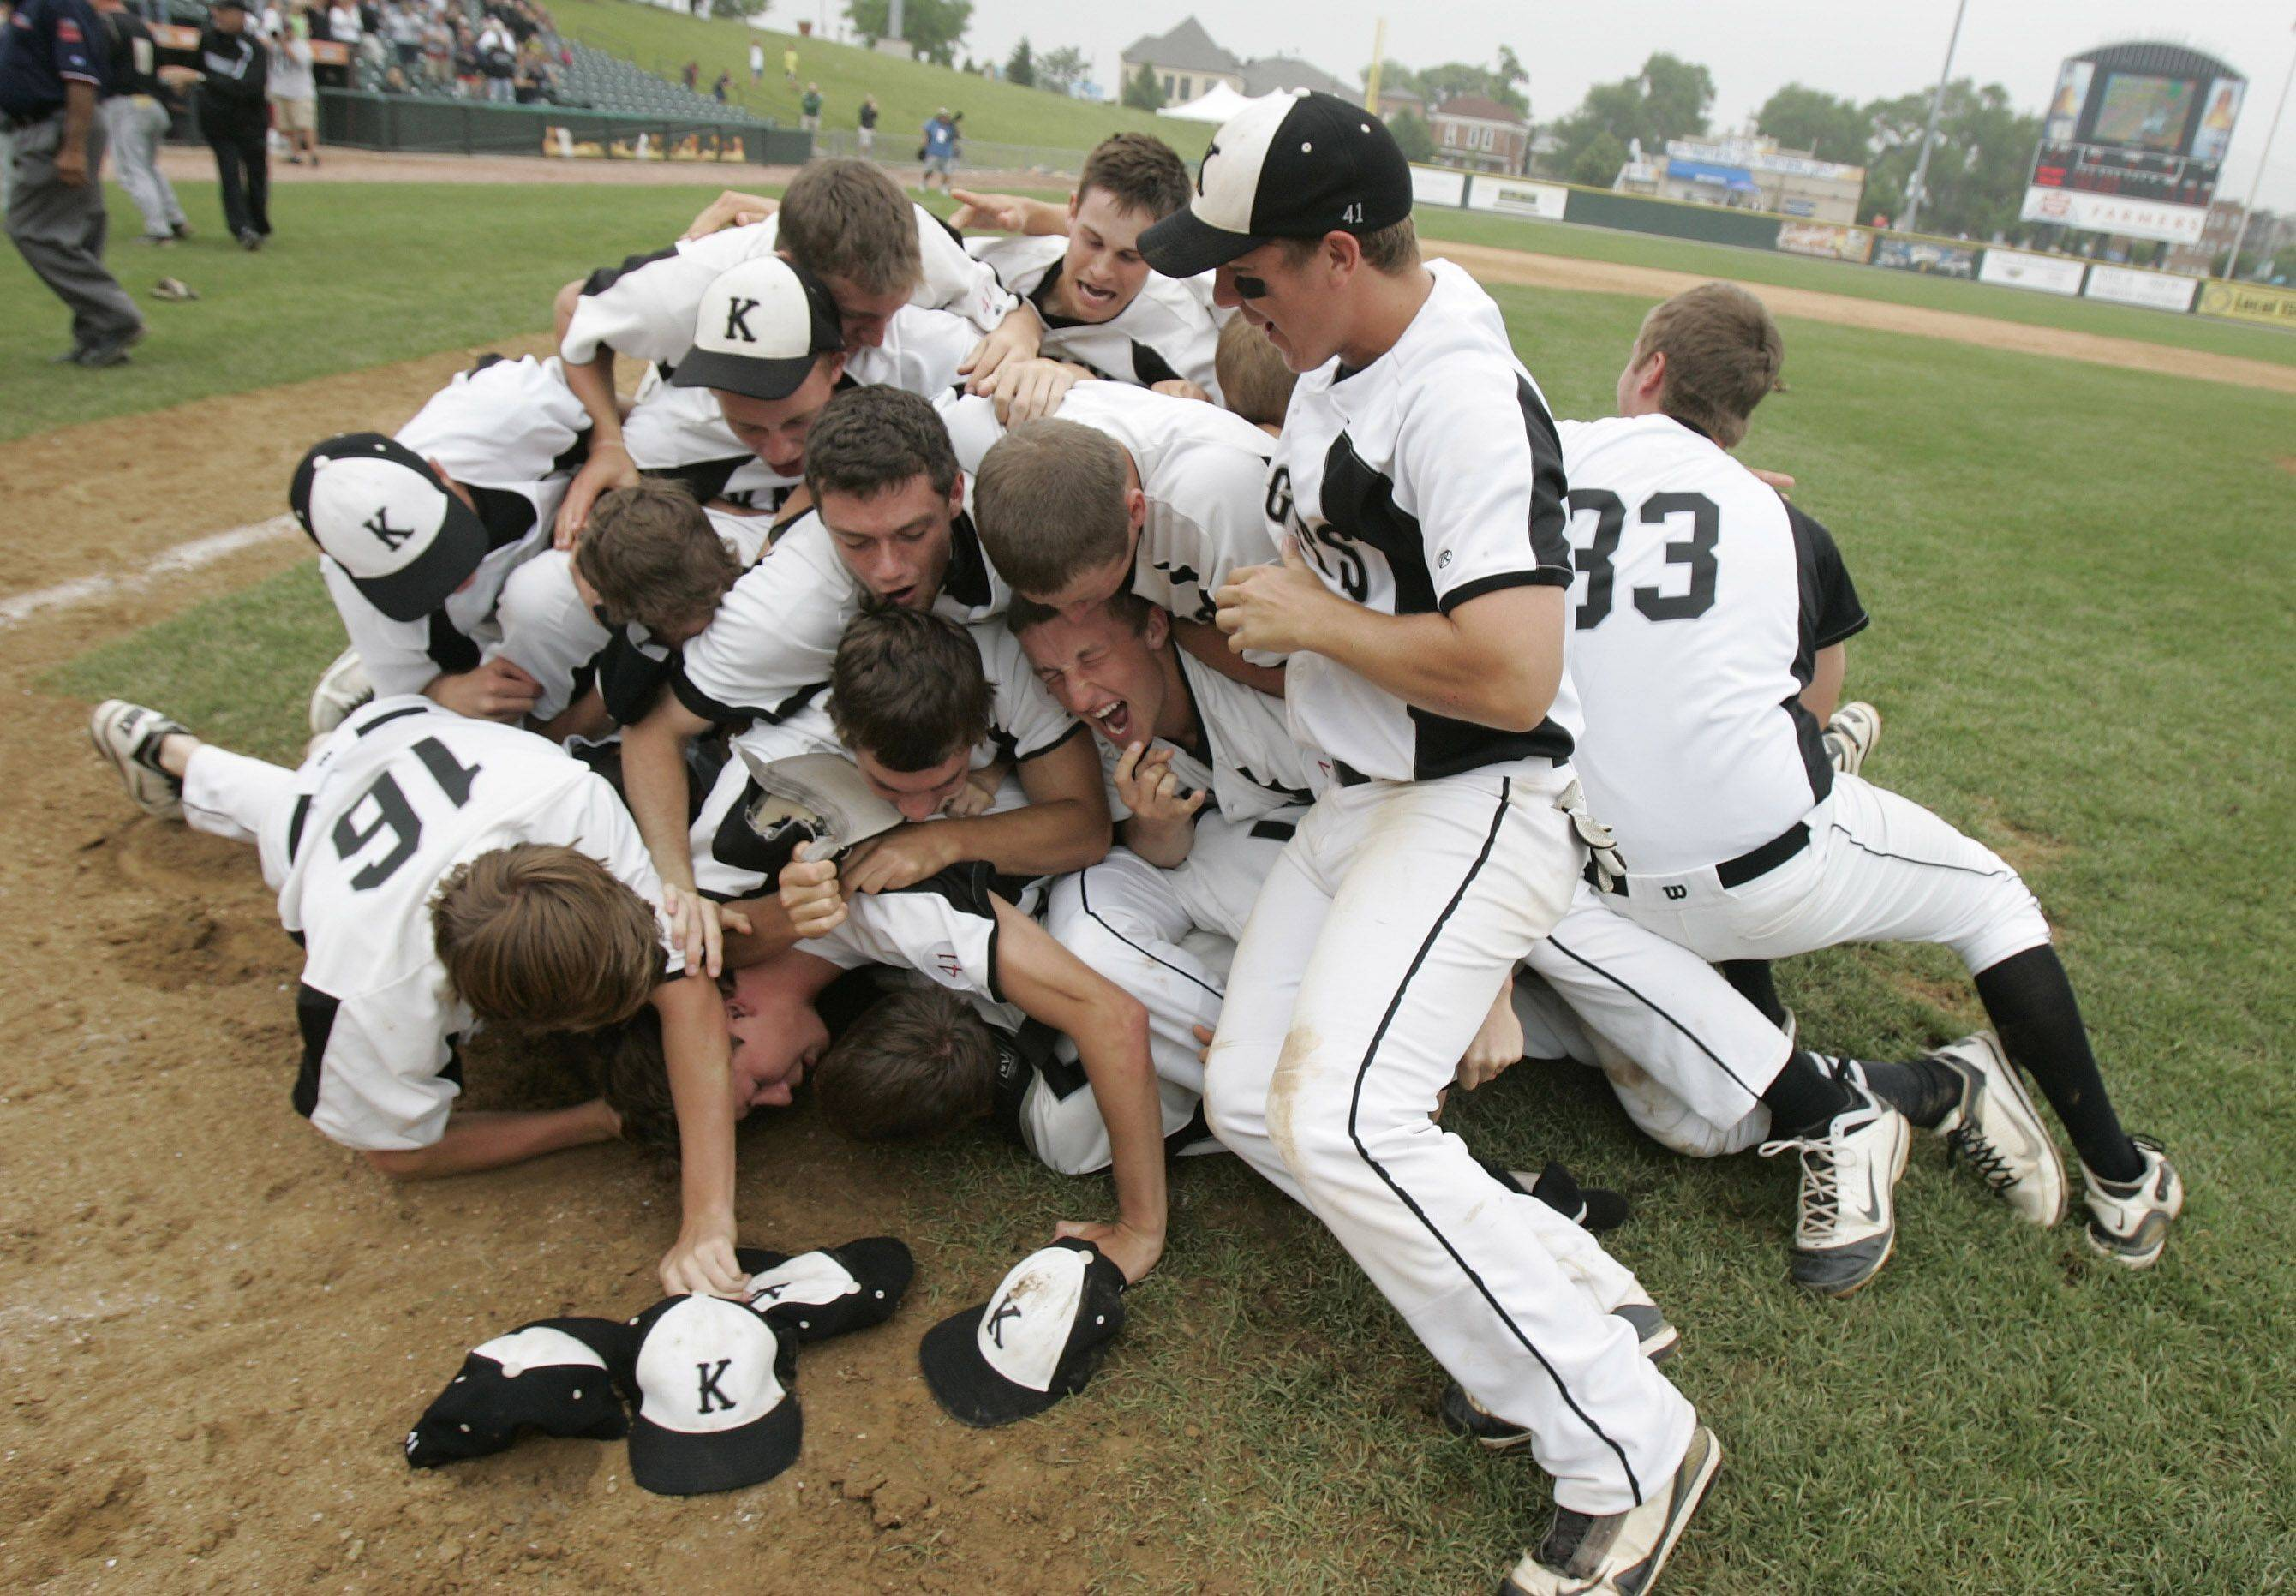 Kaneland players make a dogpile after defeating Oak Forest in the boys high school baseball game Saturday in the Class 3A state finals at Silver Cross Field in Joliet. Kaneland defeated Oak Forest 11-3 to win the state championship.